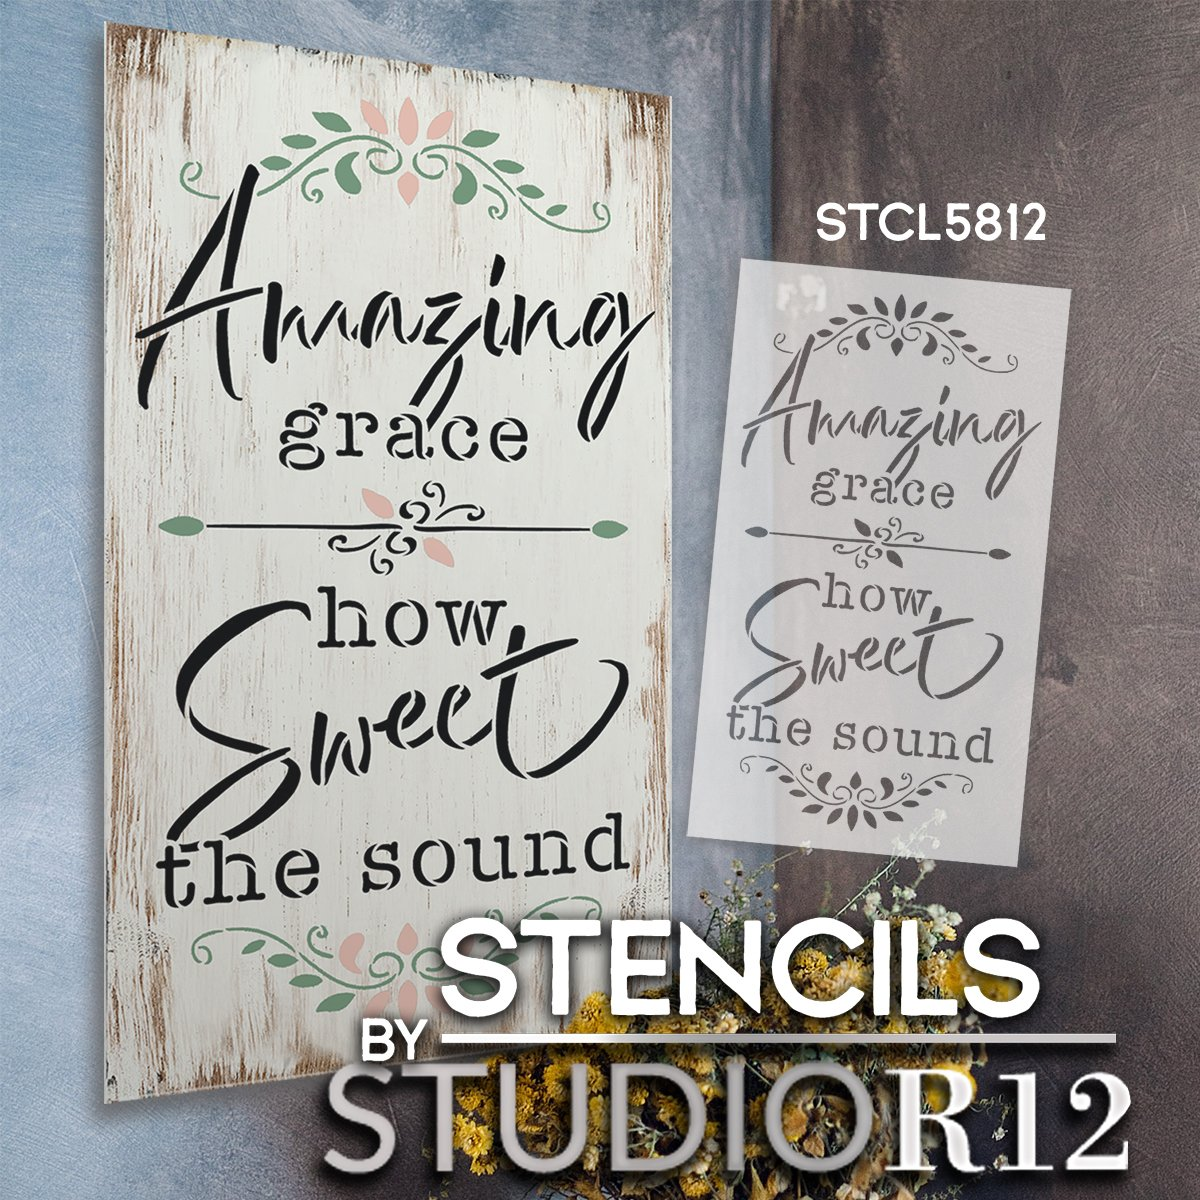 Amazing Grace How Sweet The Sound Stencil by StudioR12 | DIY Faith Home Decor | Hymn Lyrics | Craft & Paint Wood Signs | Select Size